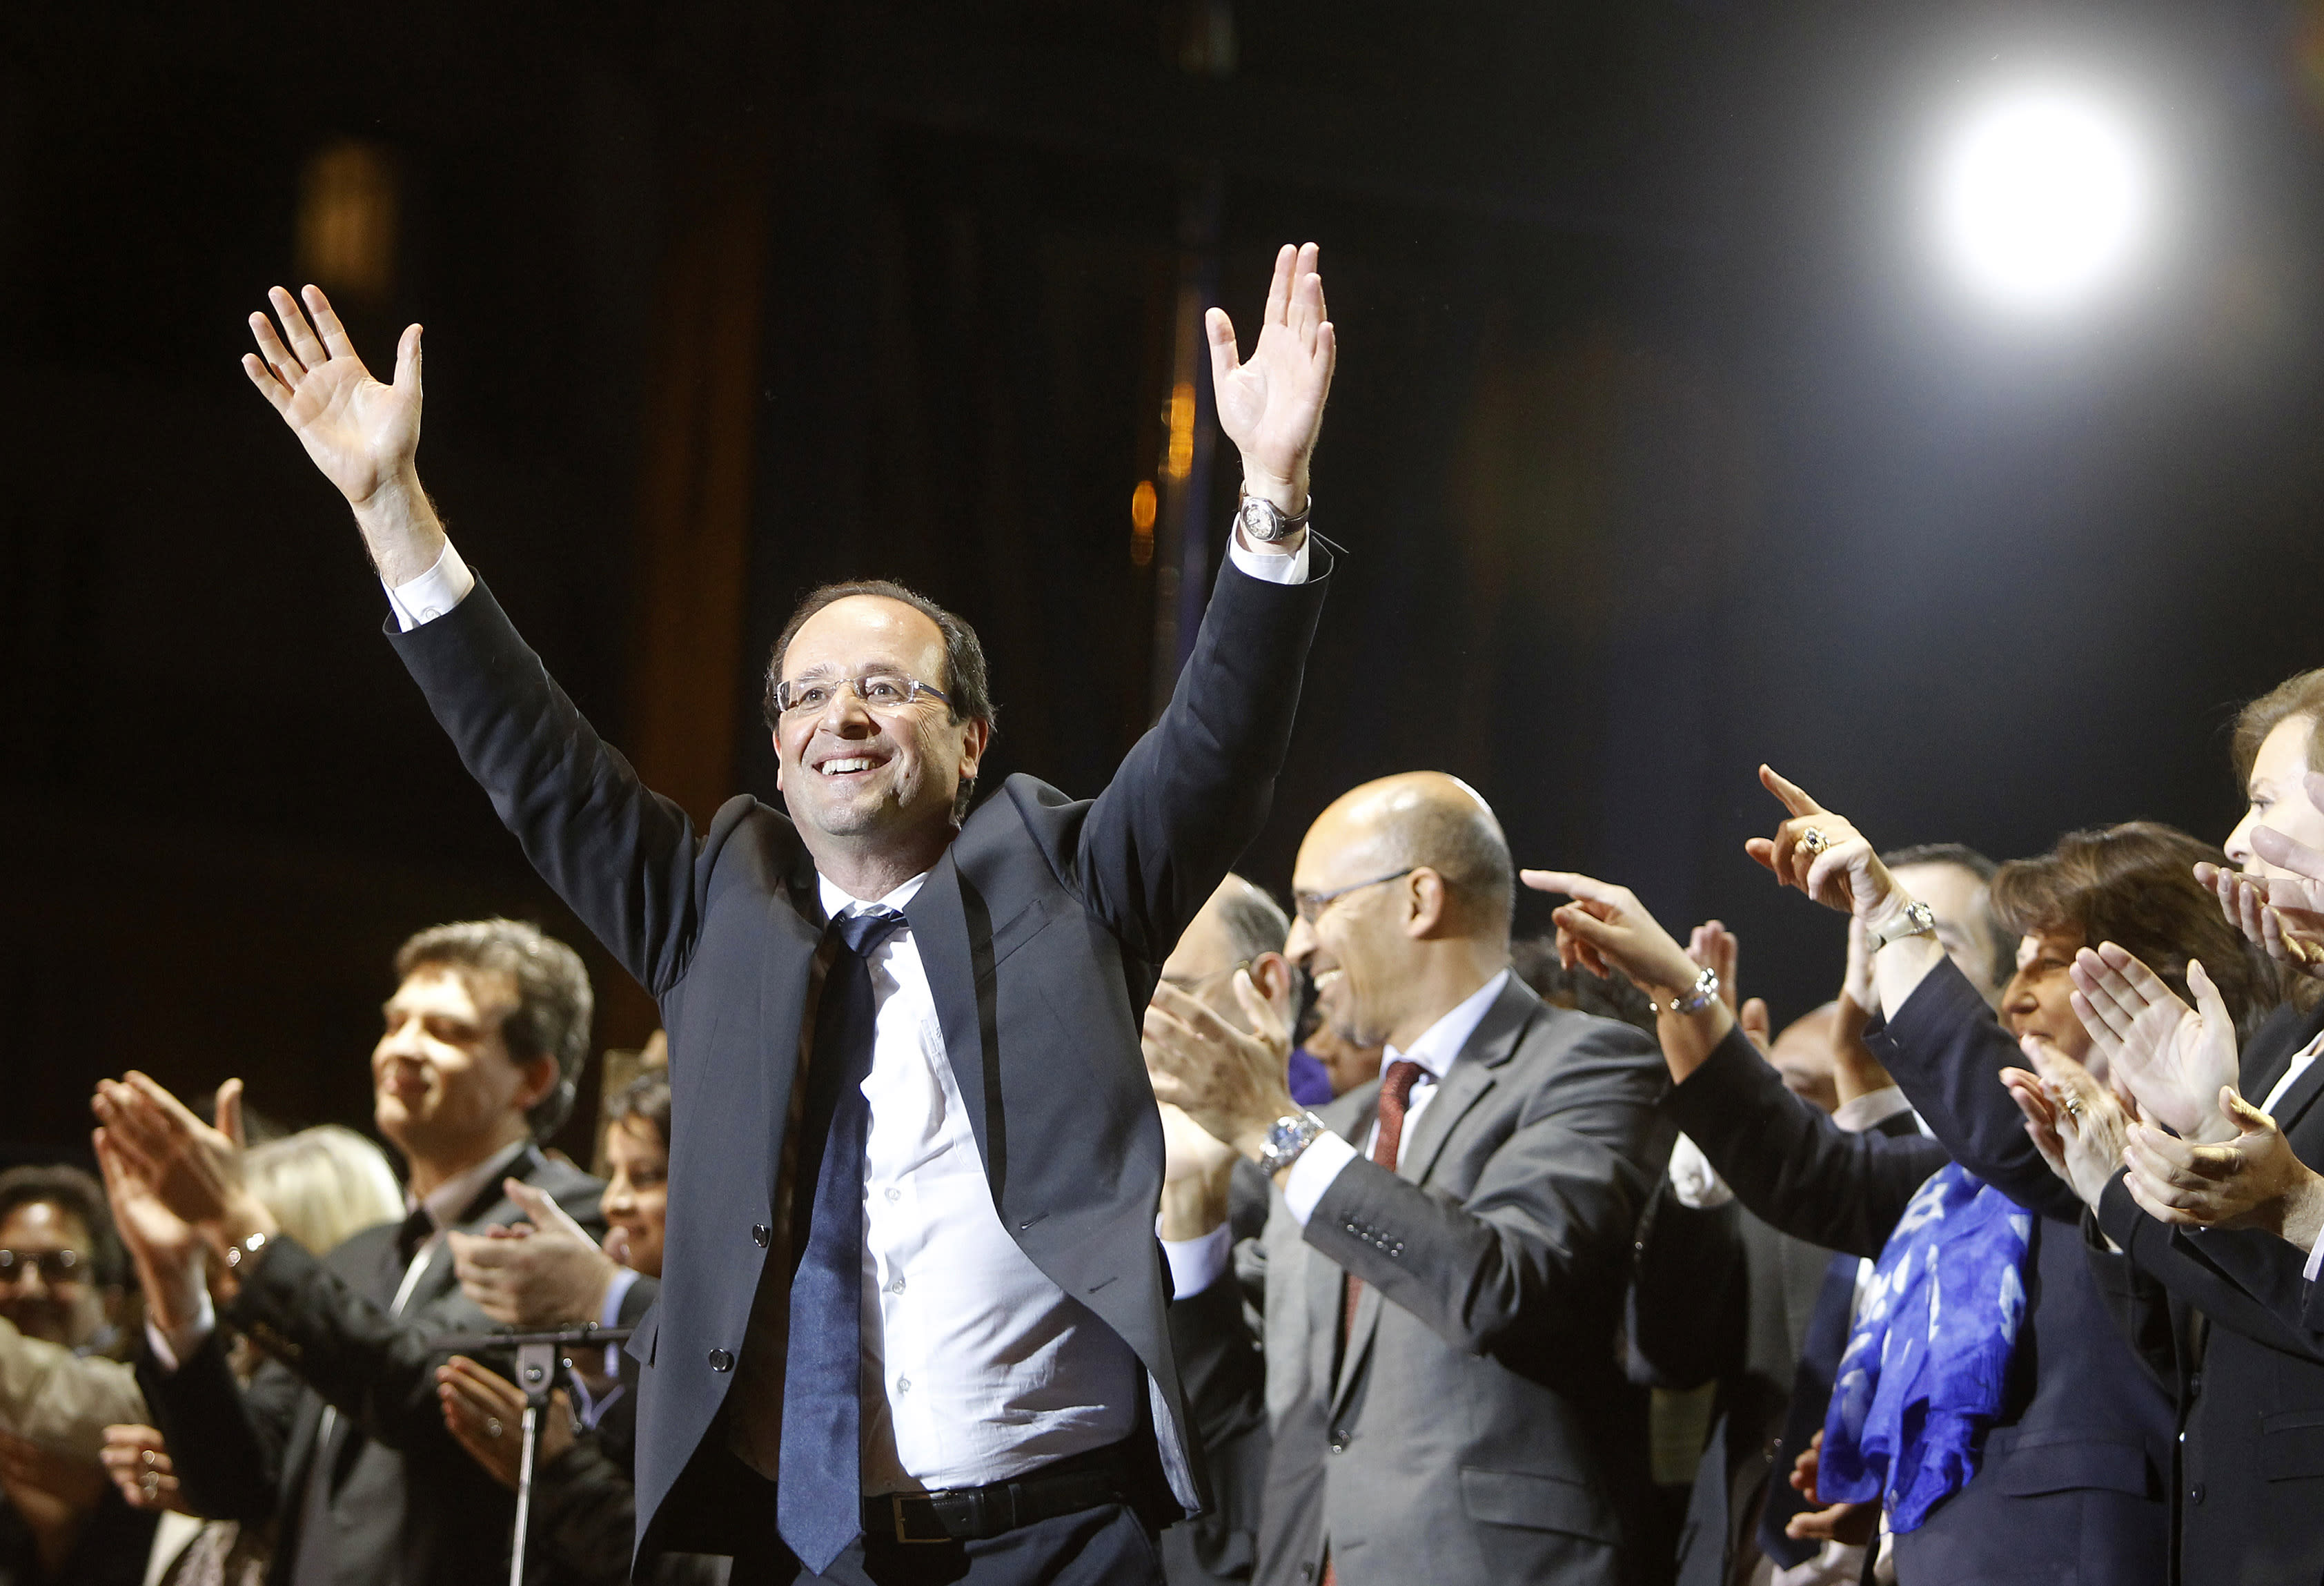 French president-elect Francois Hollande waves to crowds gathered to celebrate his election victory in Bastille Square in Paris, Sunday, May 6, 2012. Hollande defeated outgoing President Nicolas Sarkozy on Sunday to become France's next president, Sarkozy conceded defeat minutes after the polls closed. (AP Photo/Laurent Cipriani)